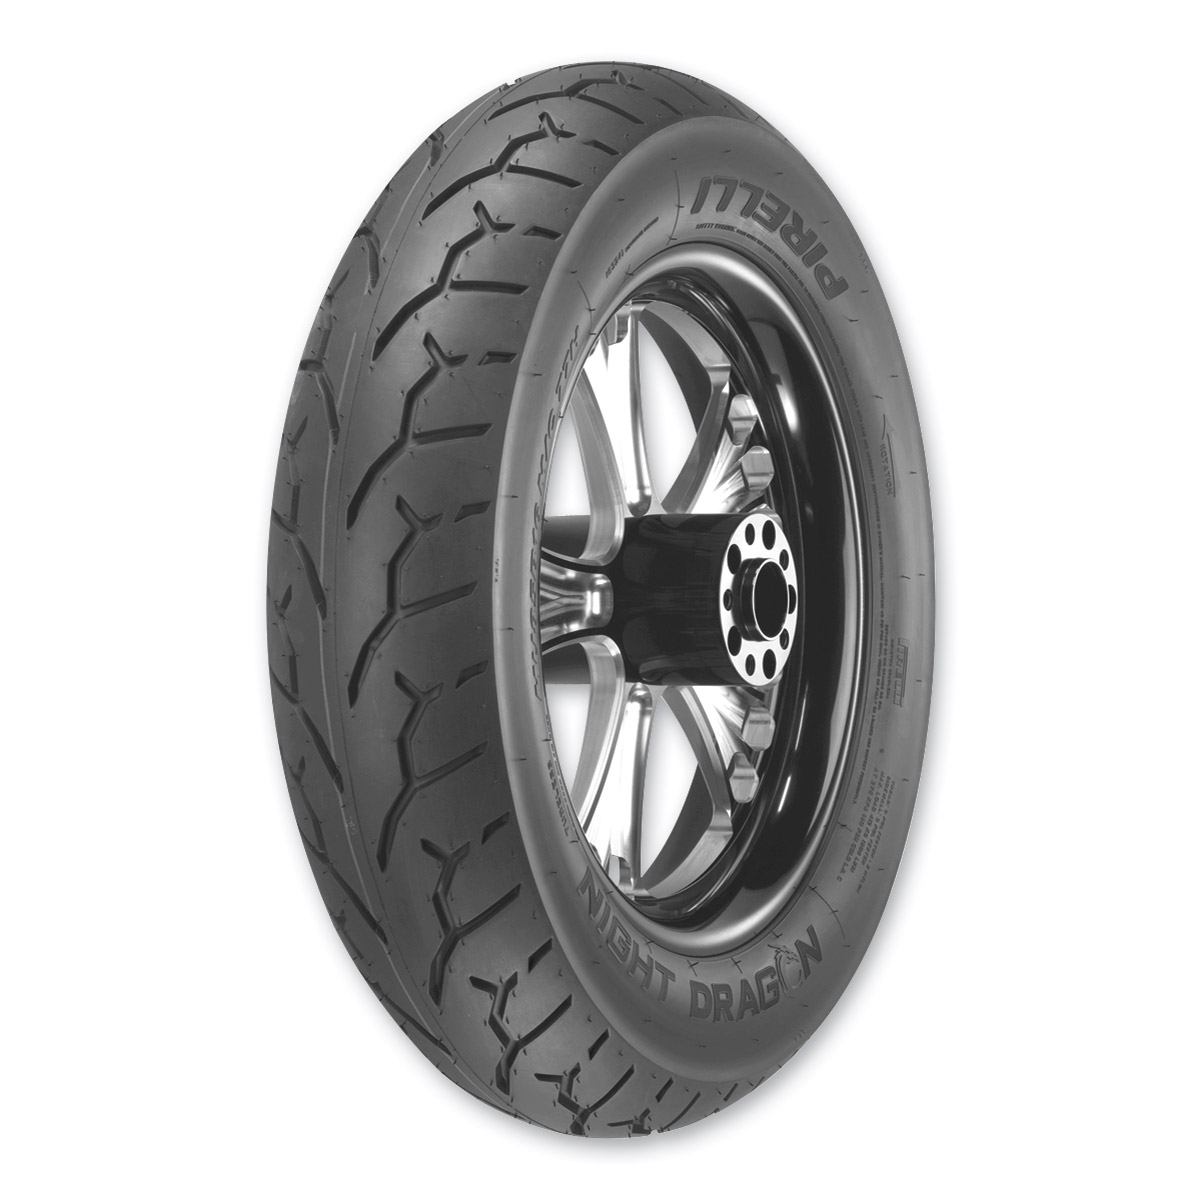 Pirelli Night Dragon 140/70B18 Front Tire